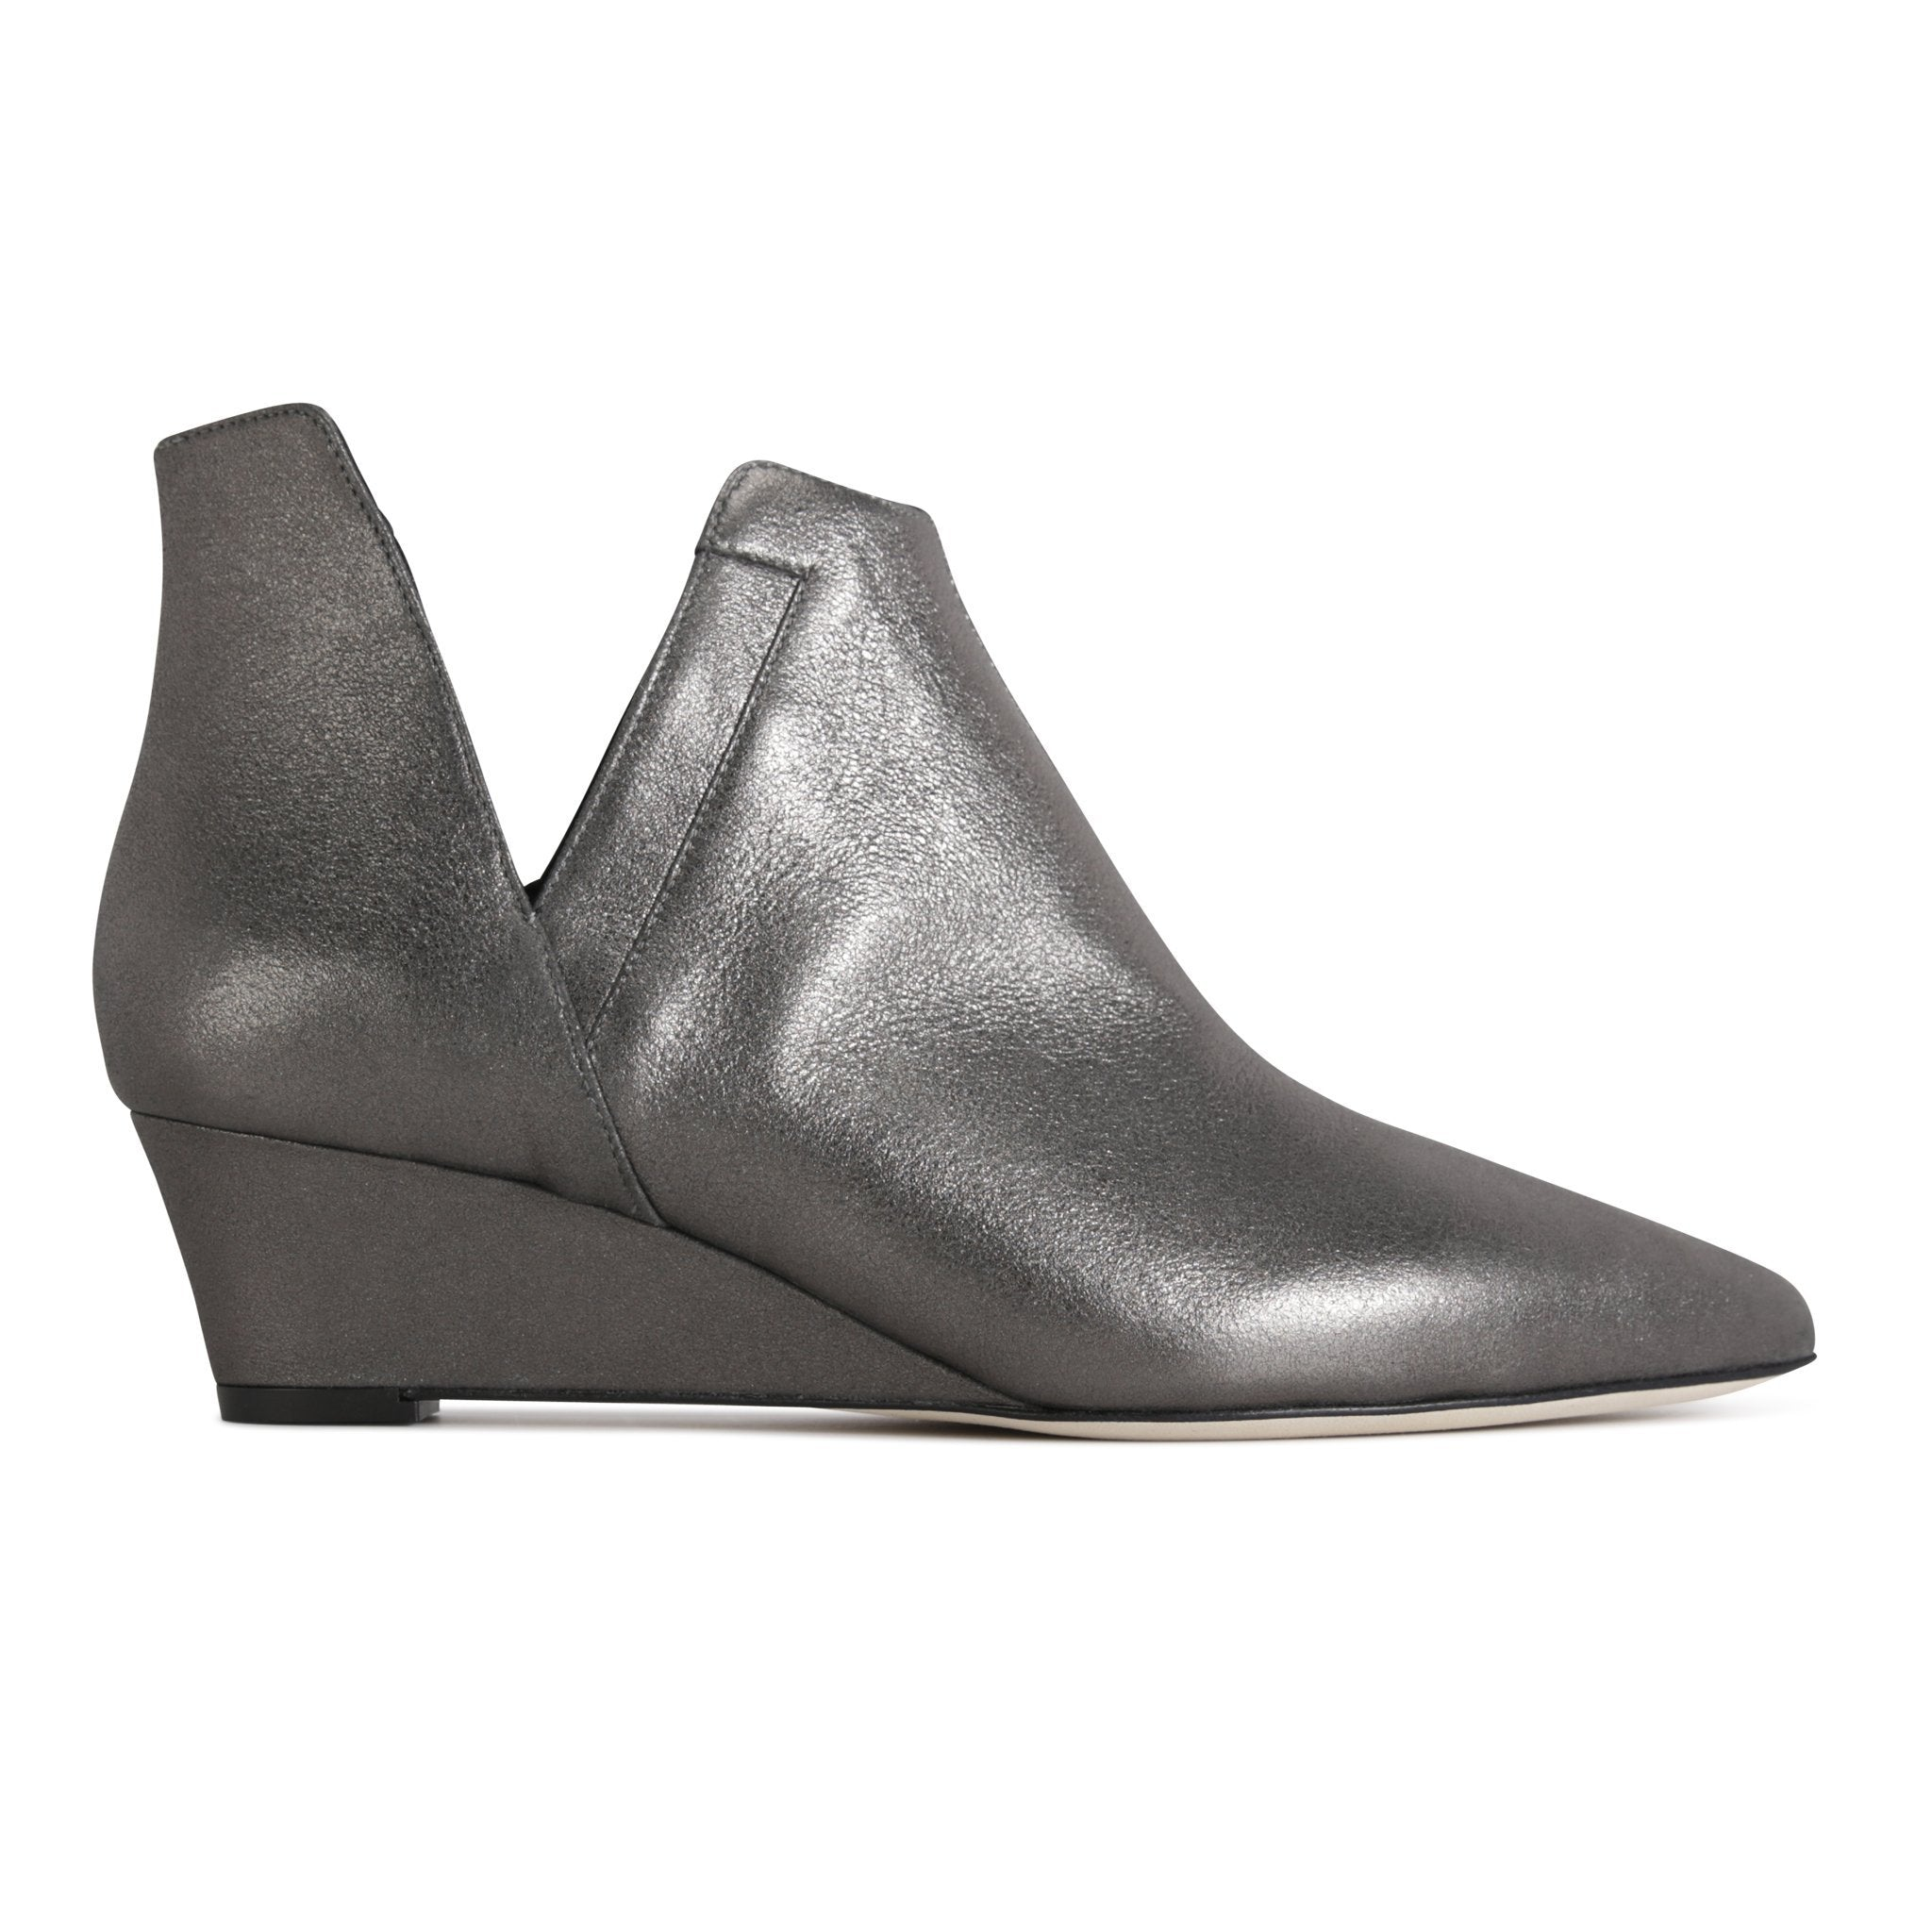 SYRENE - Burma Anthracite, VIAJIYU - Women's Hand Made Sustainable Luxury Shoes. Made in Italy. Made to Order.